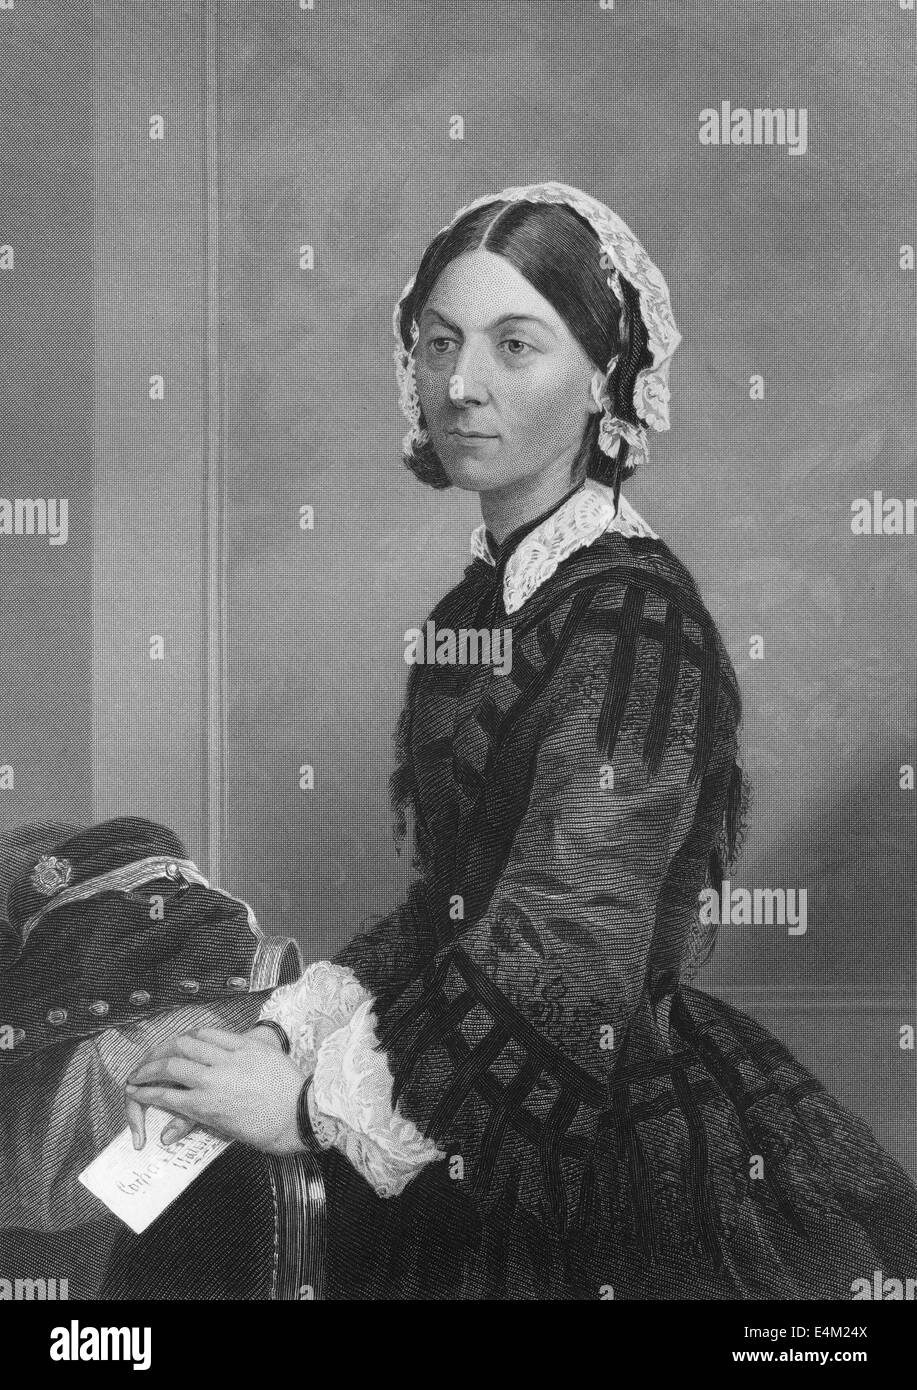 Florence Nightingale, 1820 - 1910, an English social reformer and the founder of modern nursing, - Stock Image